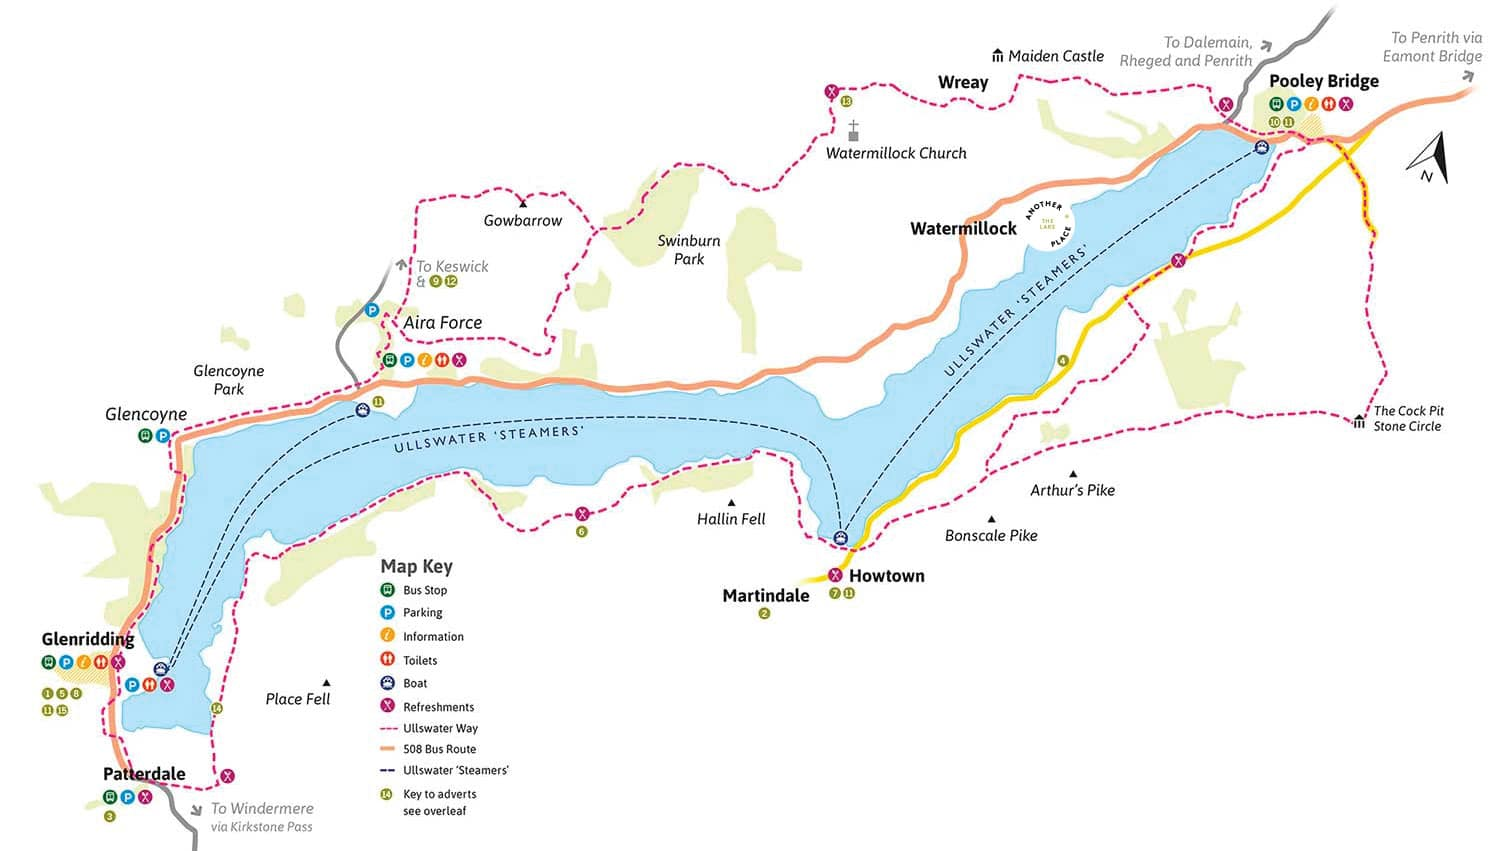 The Ullswater Way route map